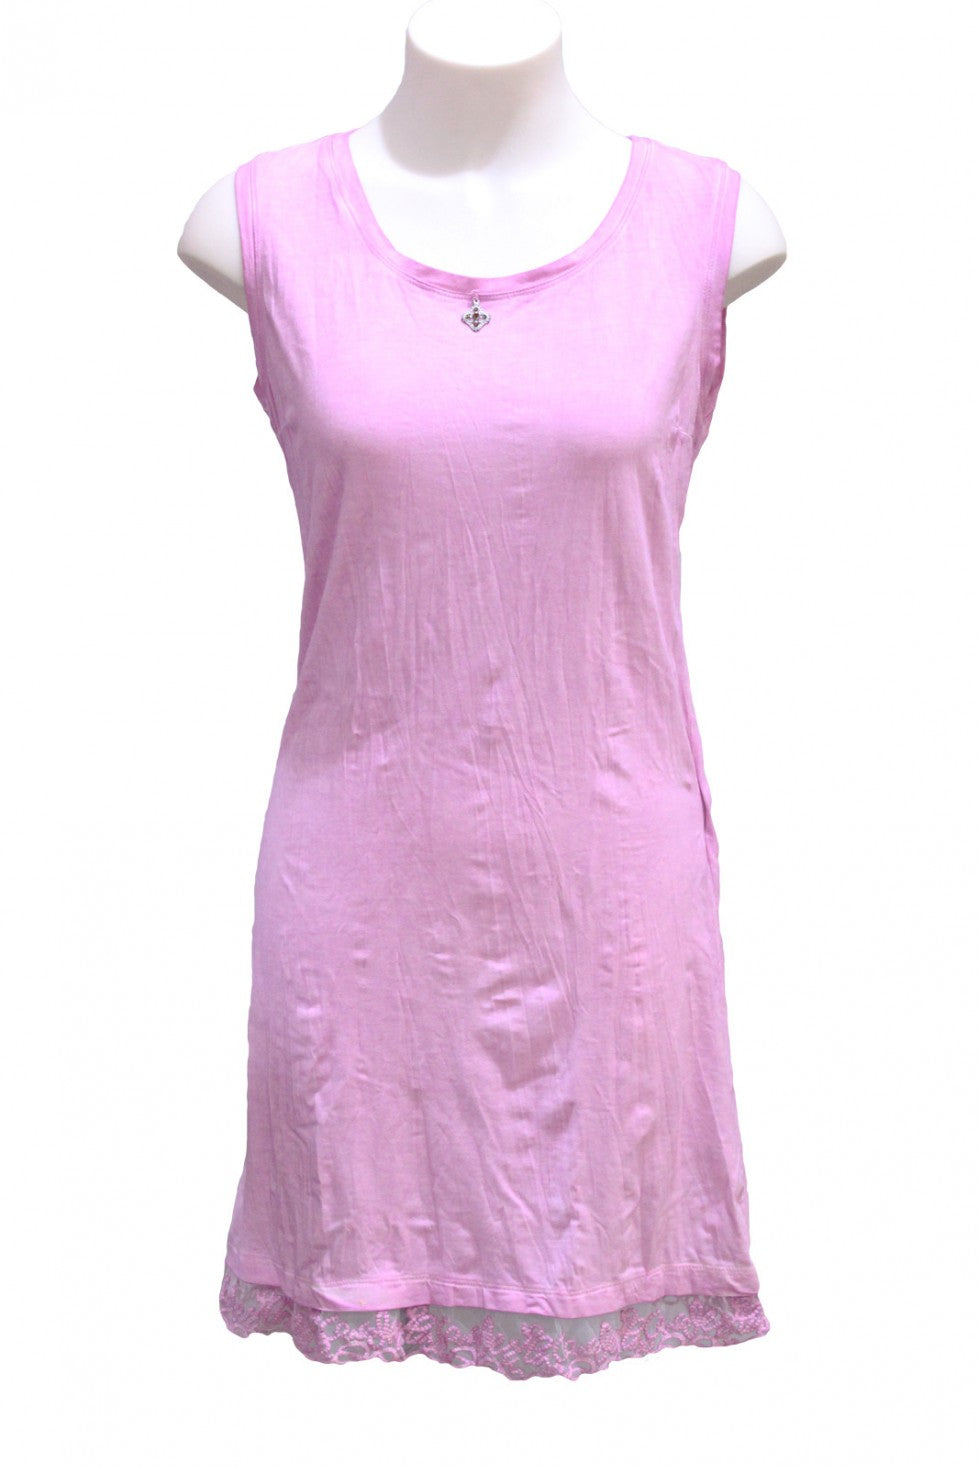 Pink Simple Elisa Cavaletti Dress Style and Grace